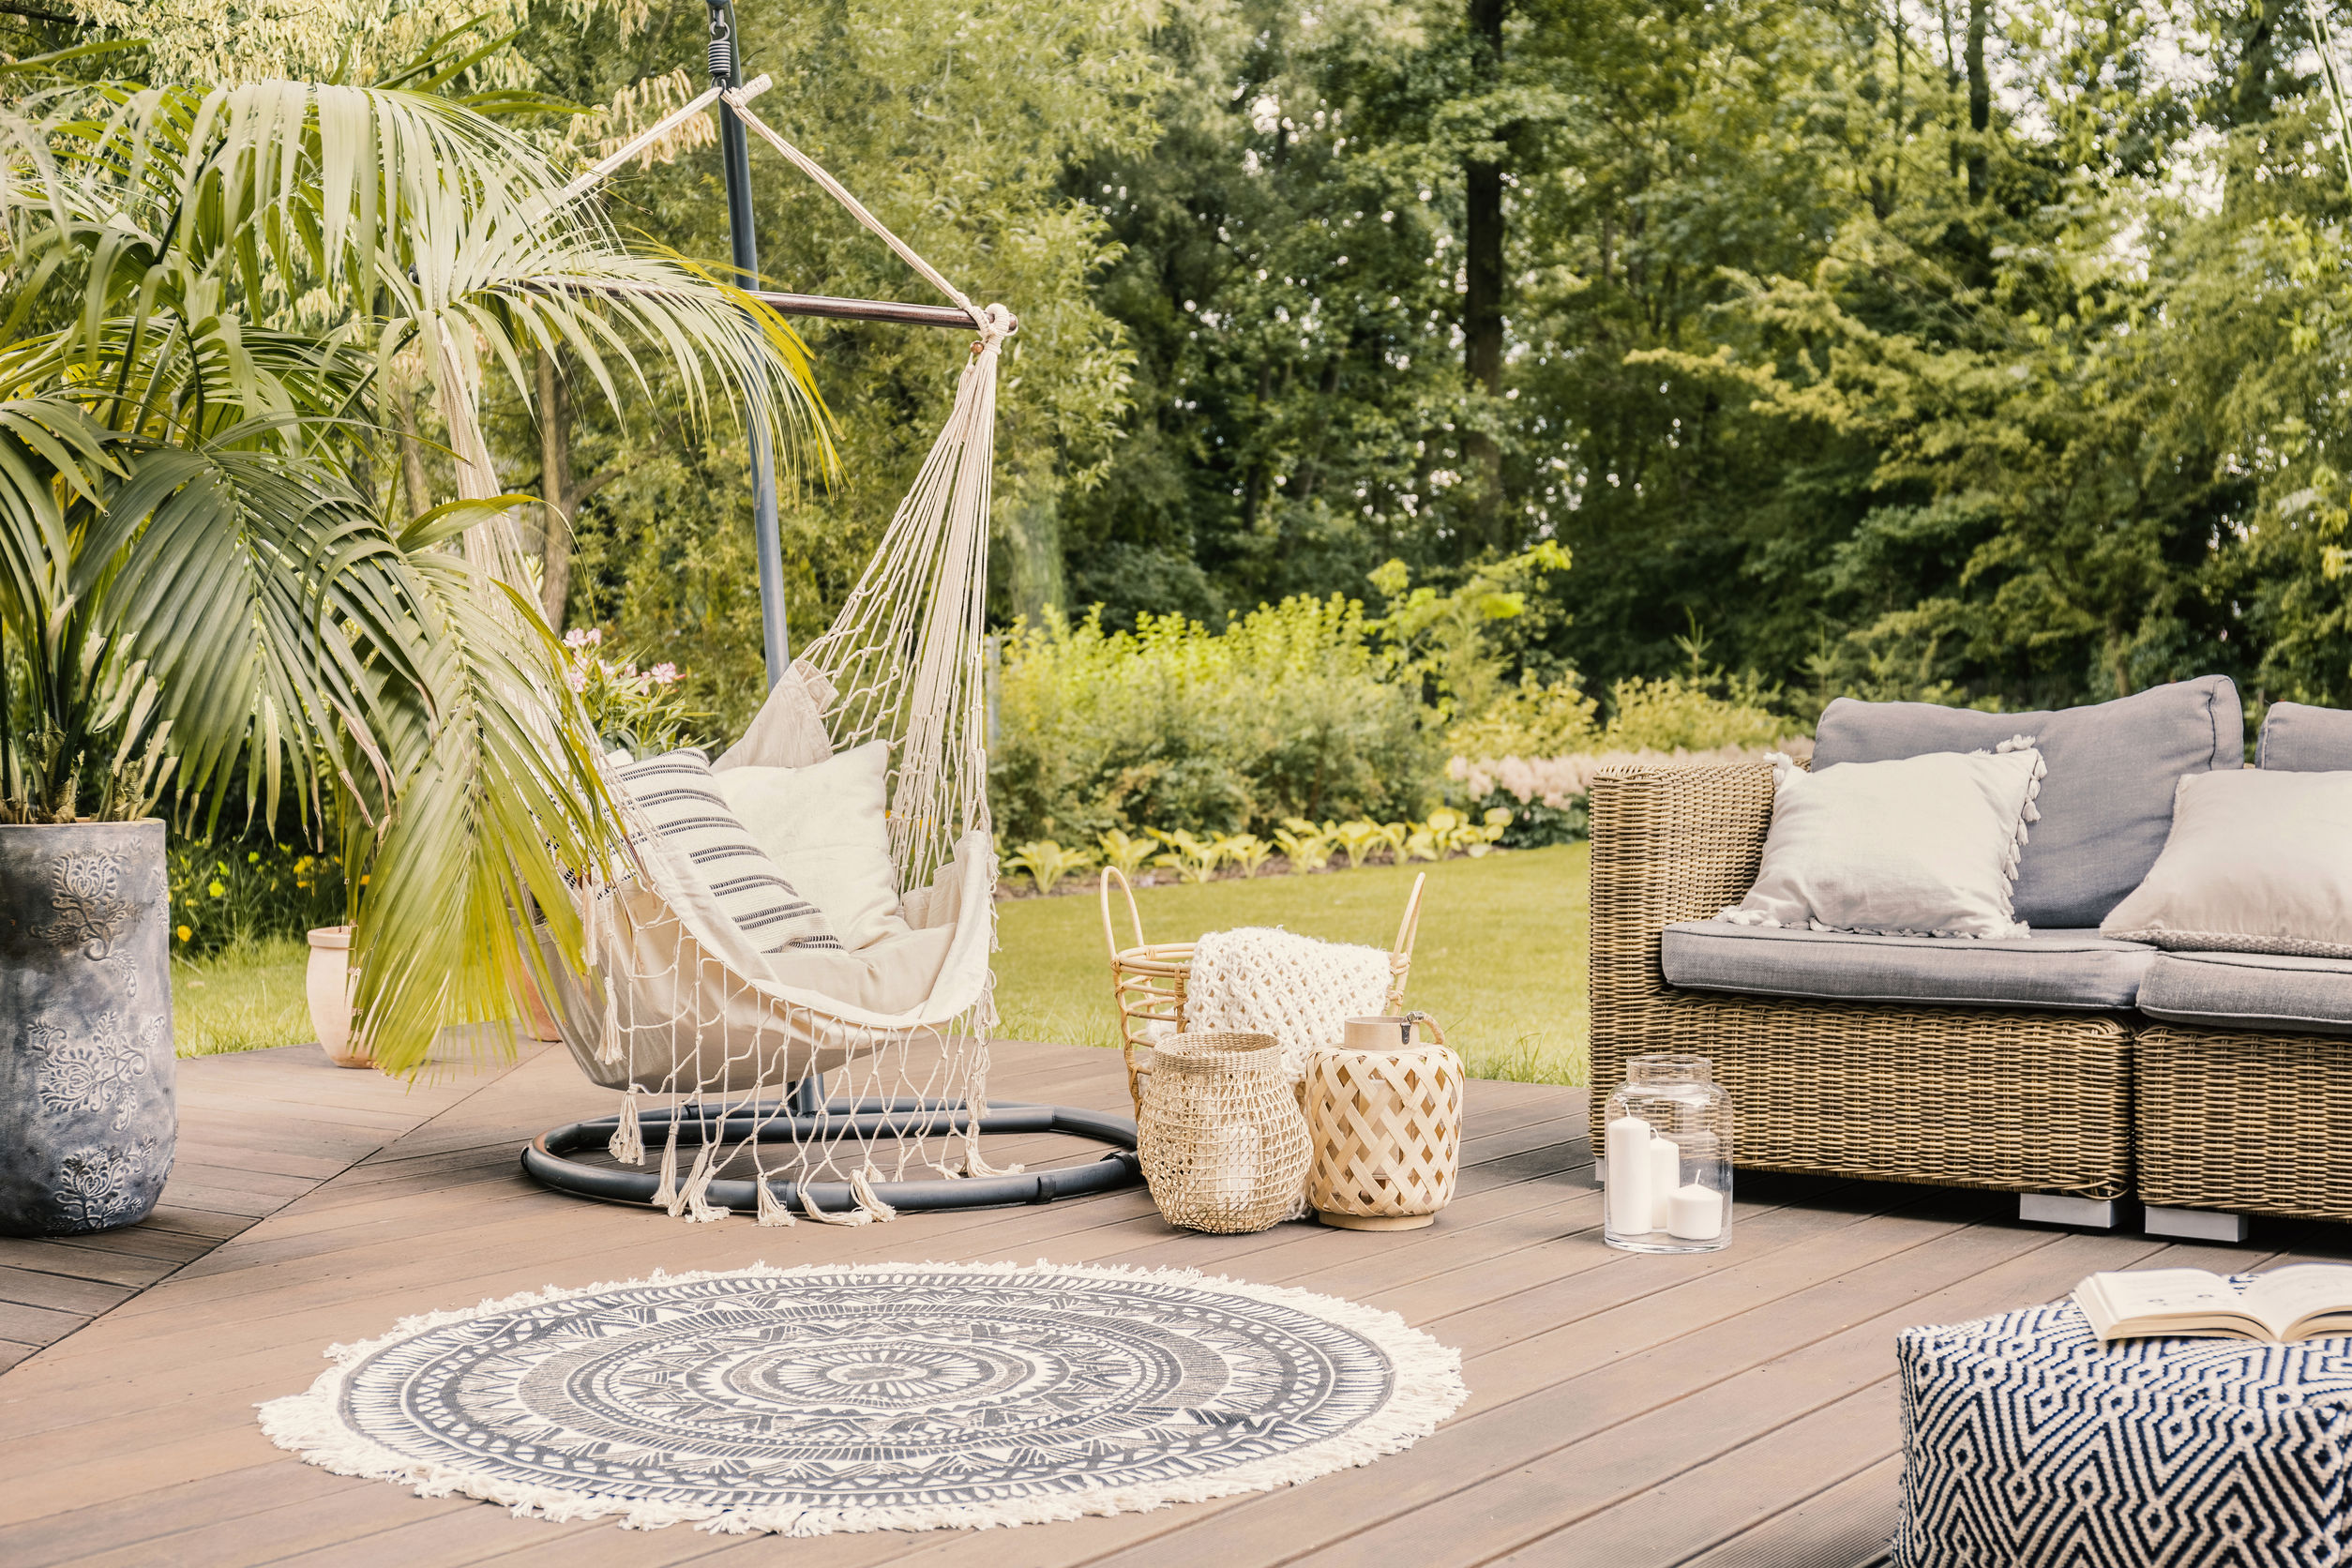 5 Spring Cleaning Tips for Your Patio